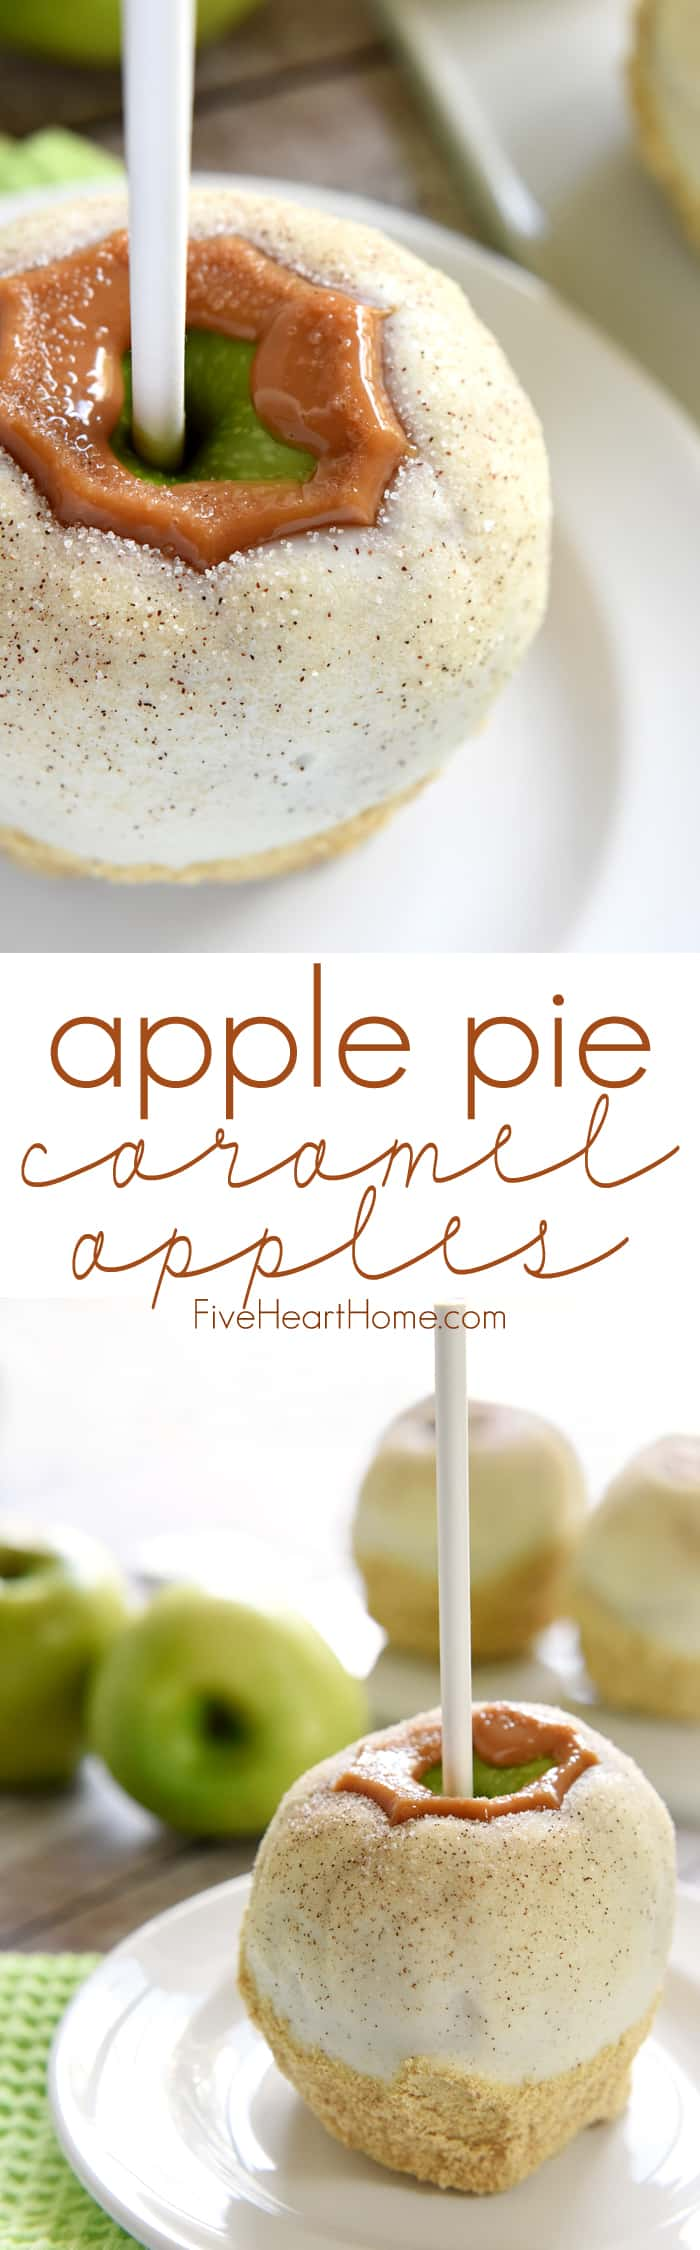 Apple Pie Caramel Apples Collage & Text Overlay